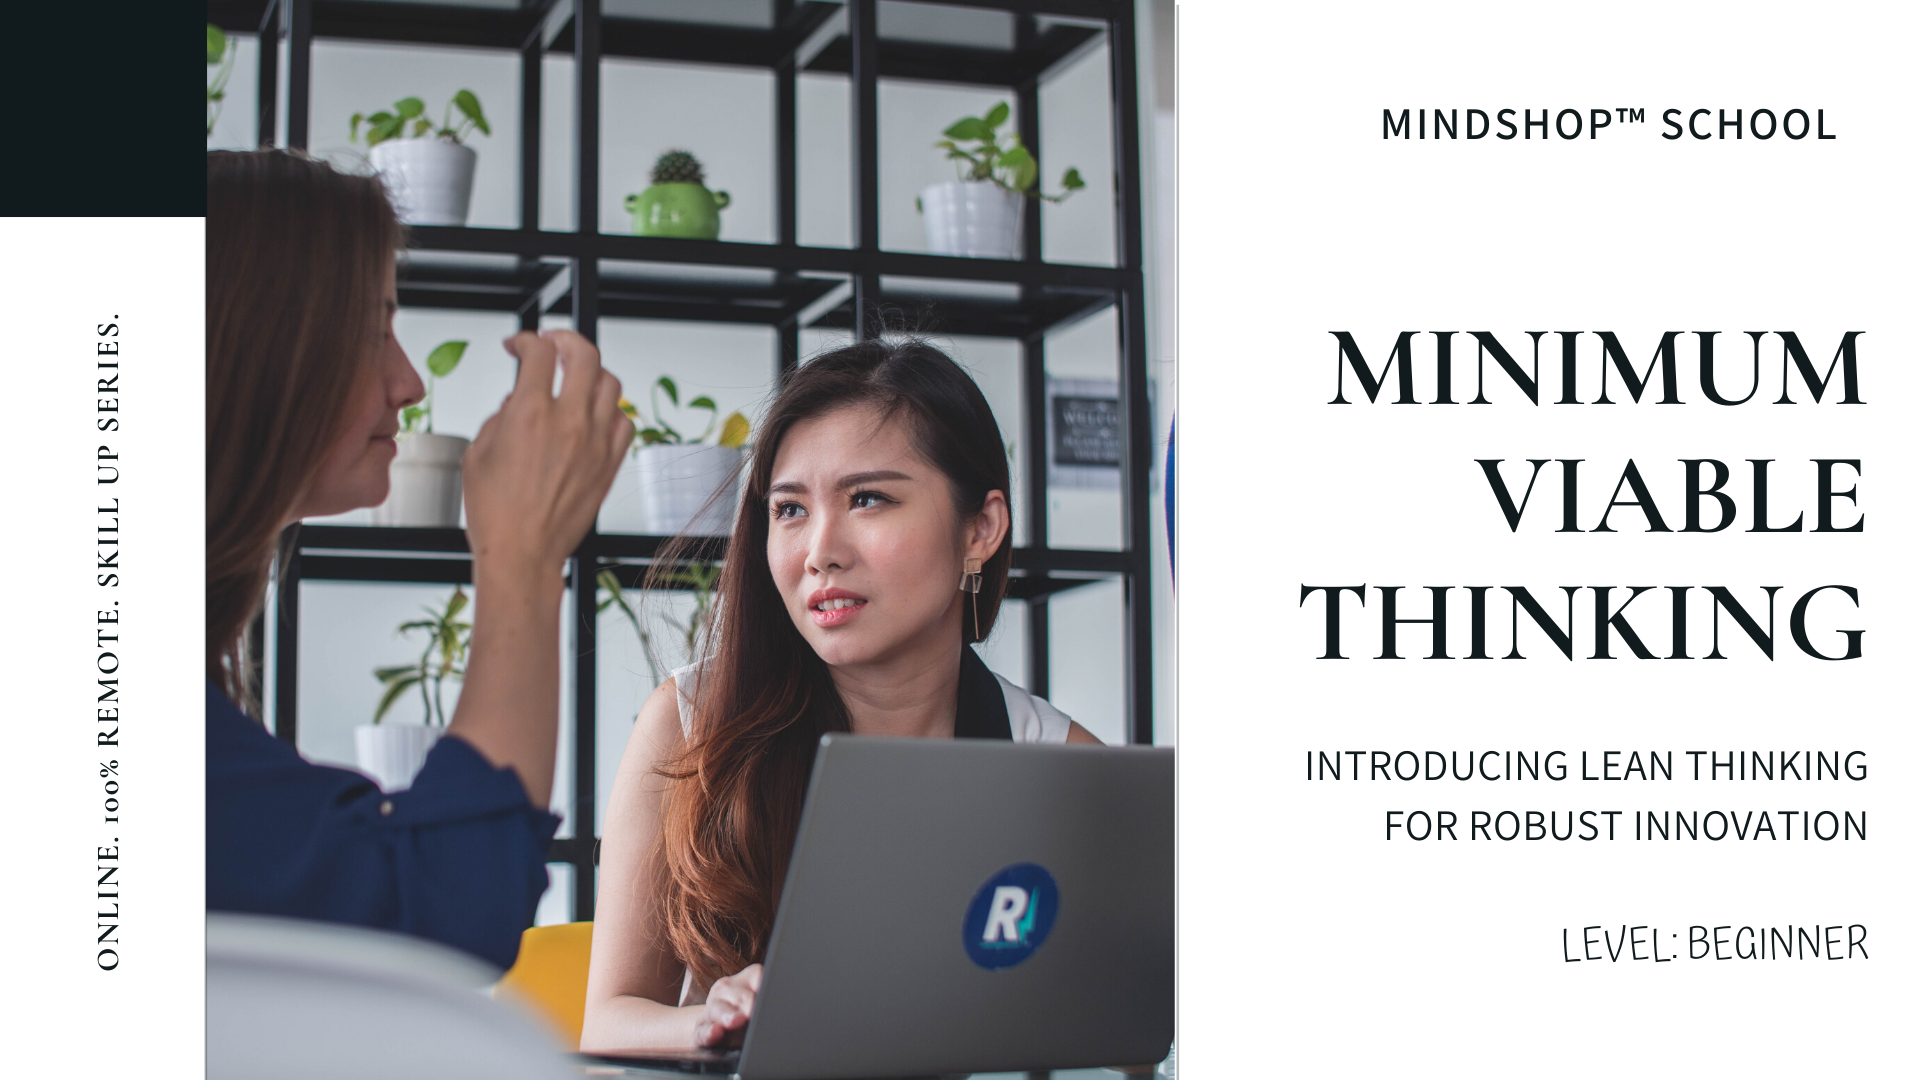 CERTIFICATE: Develop Innovative Product with Minimum Viable Thinking